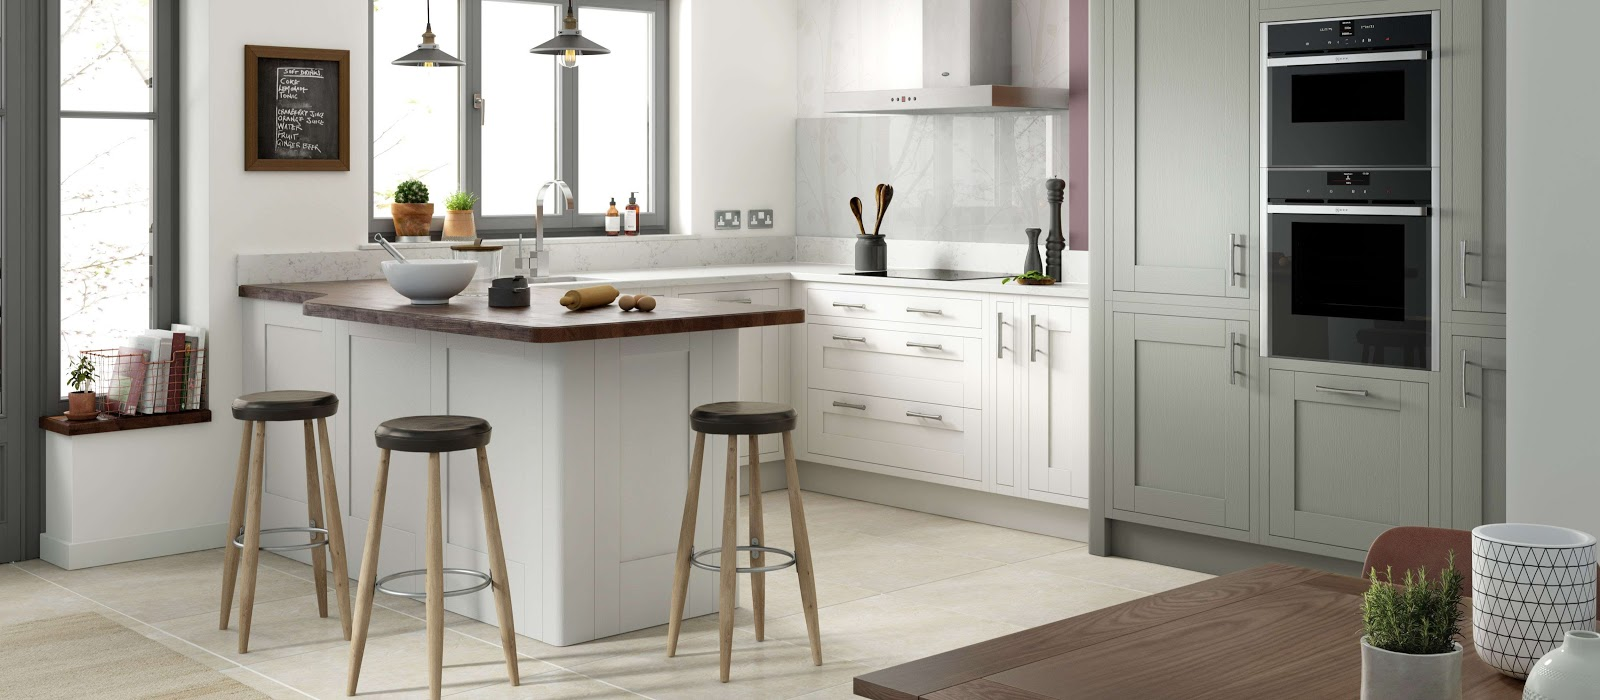 Magna Traditional range | Heart Kitchens